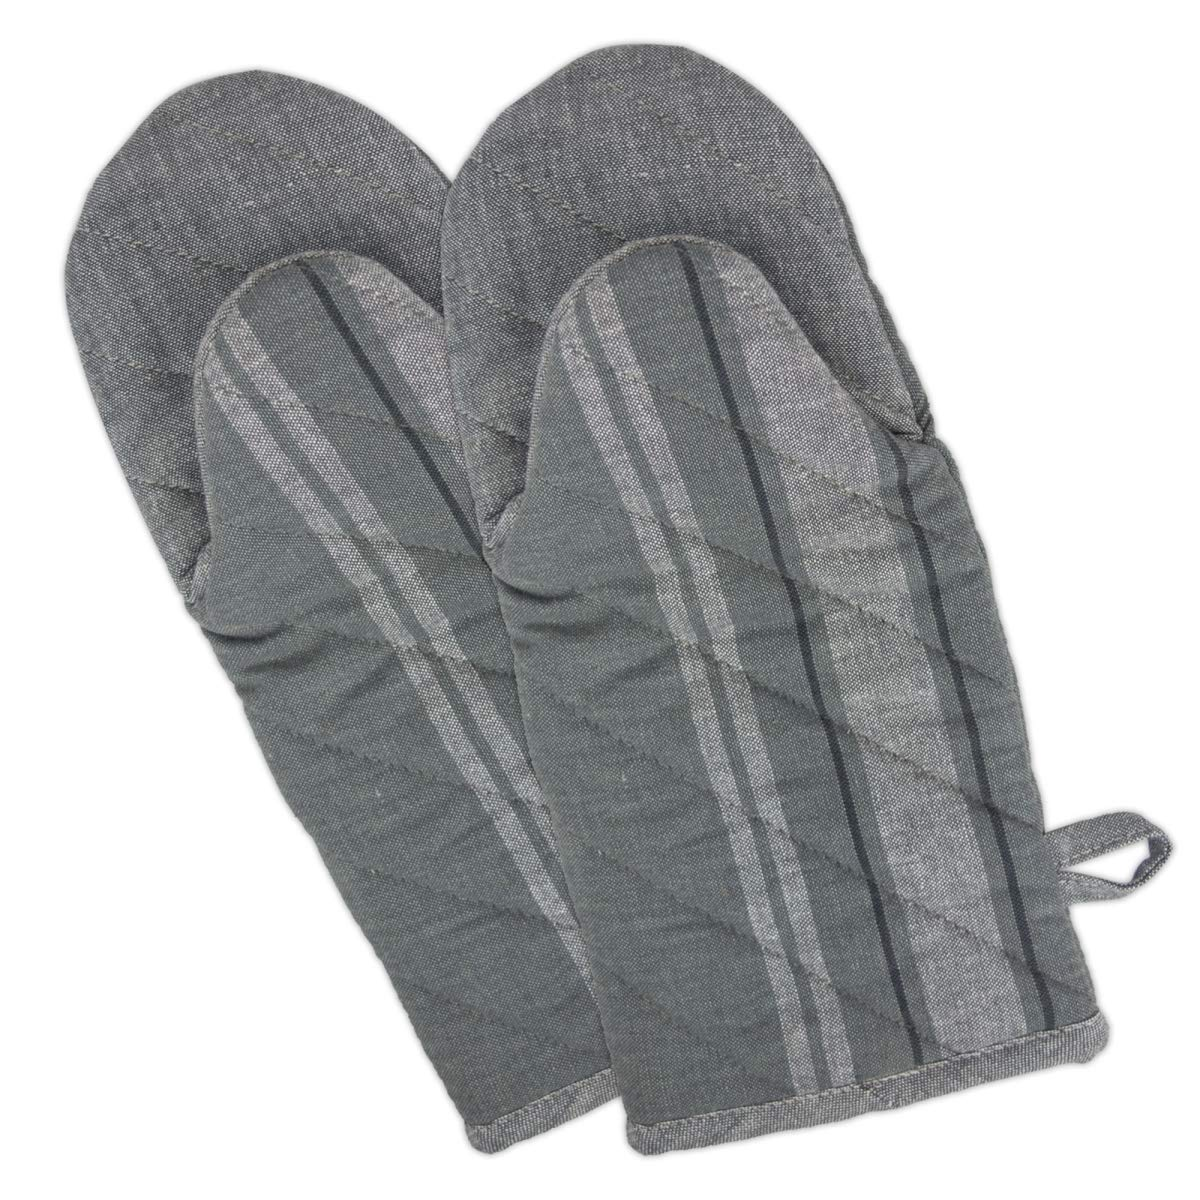 Design Imports CAMZ36492 Gray Chambray French Stripe Oven Mitt - Set of 2